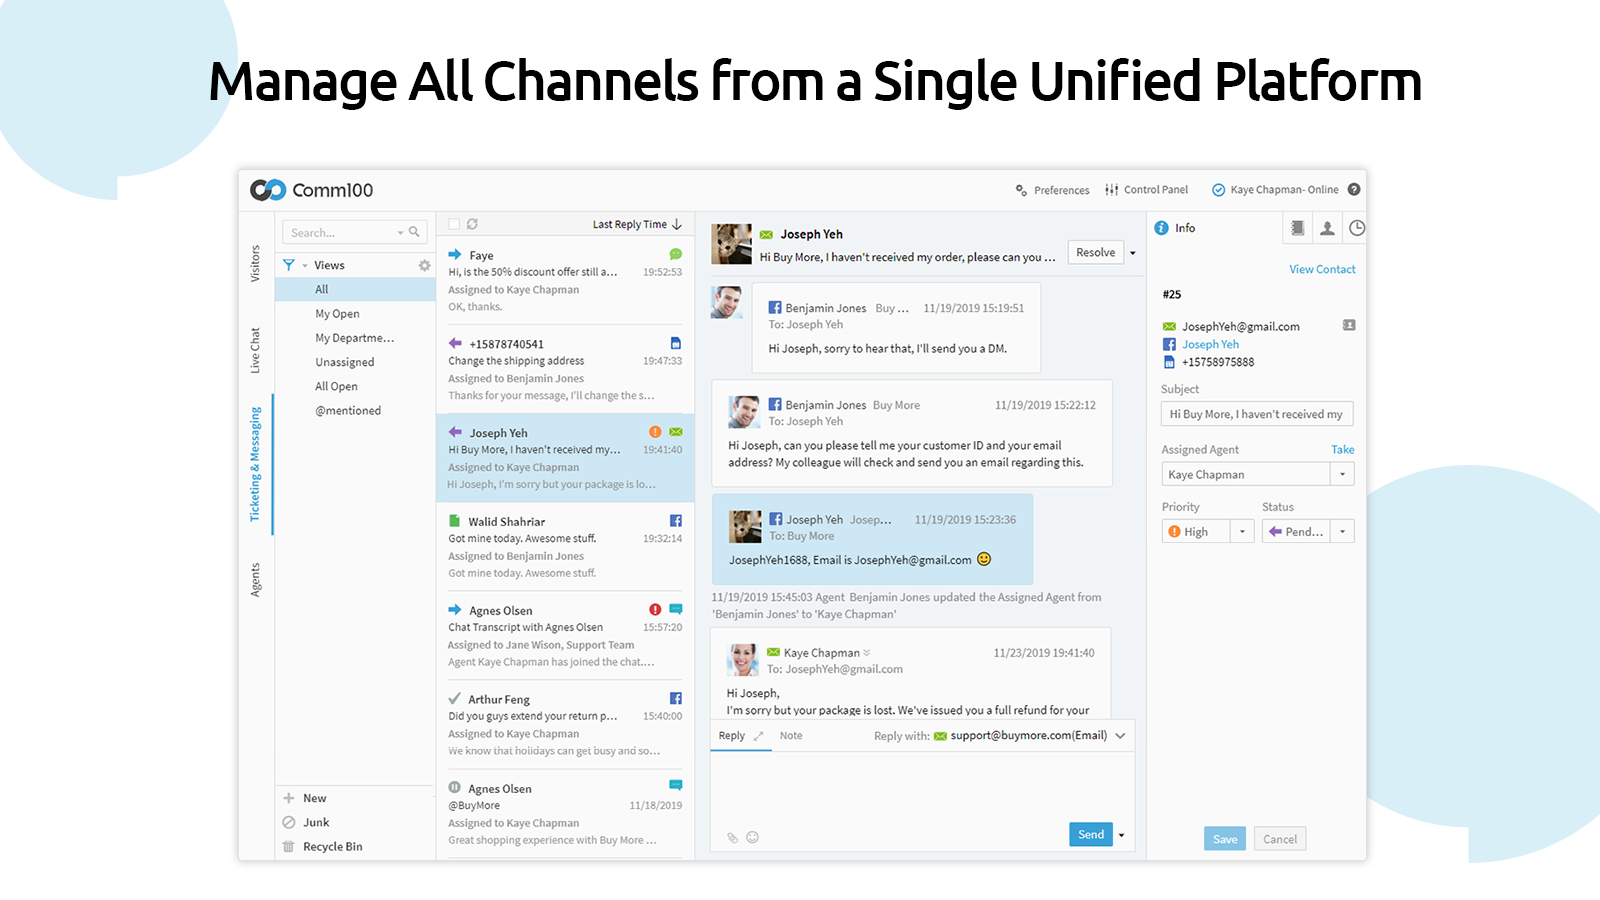 Manage All Channels from a Single Unified Platform